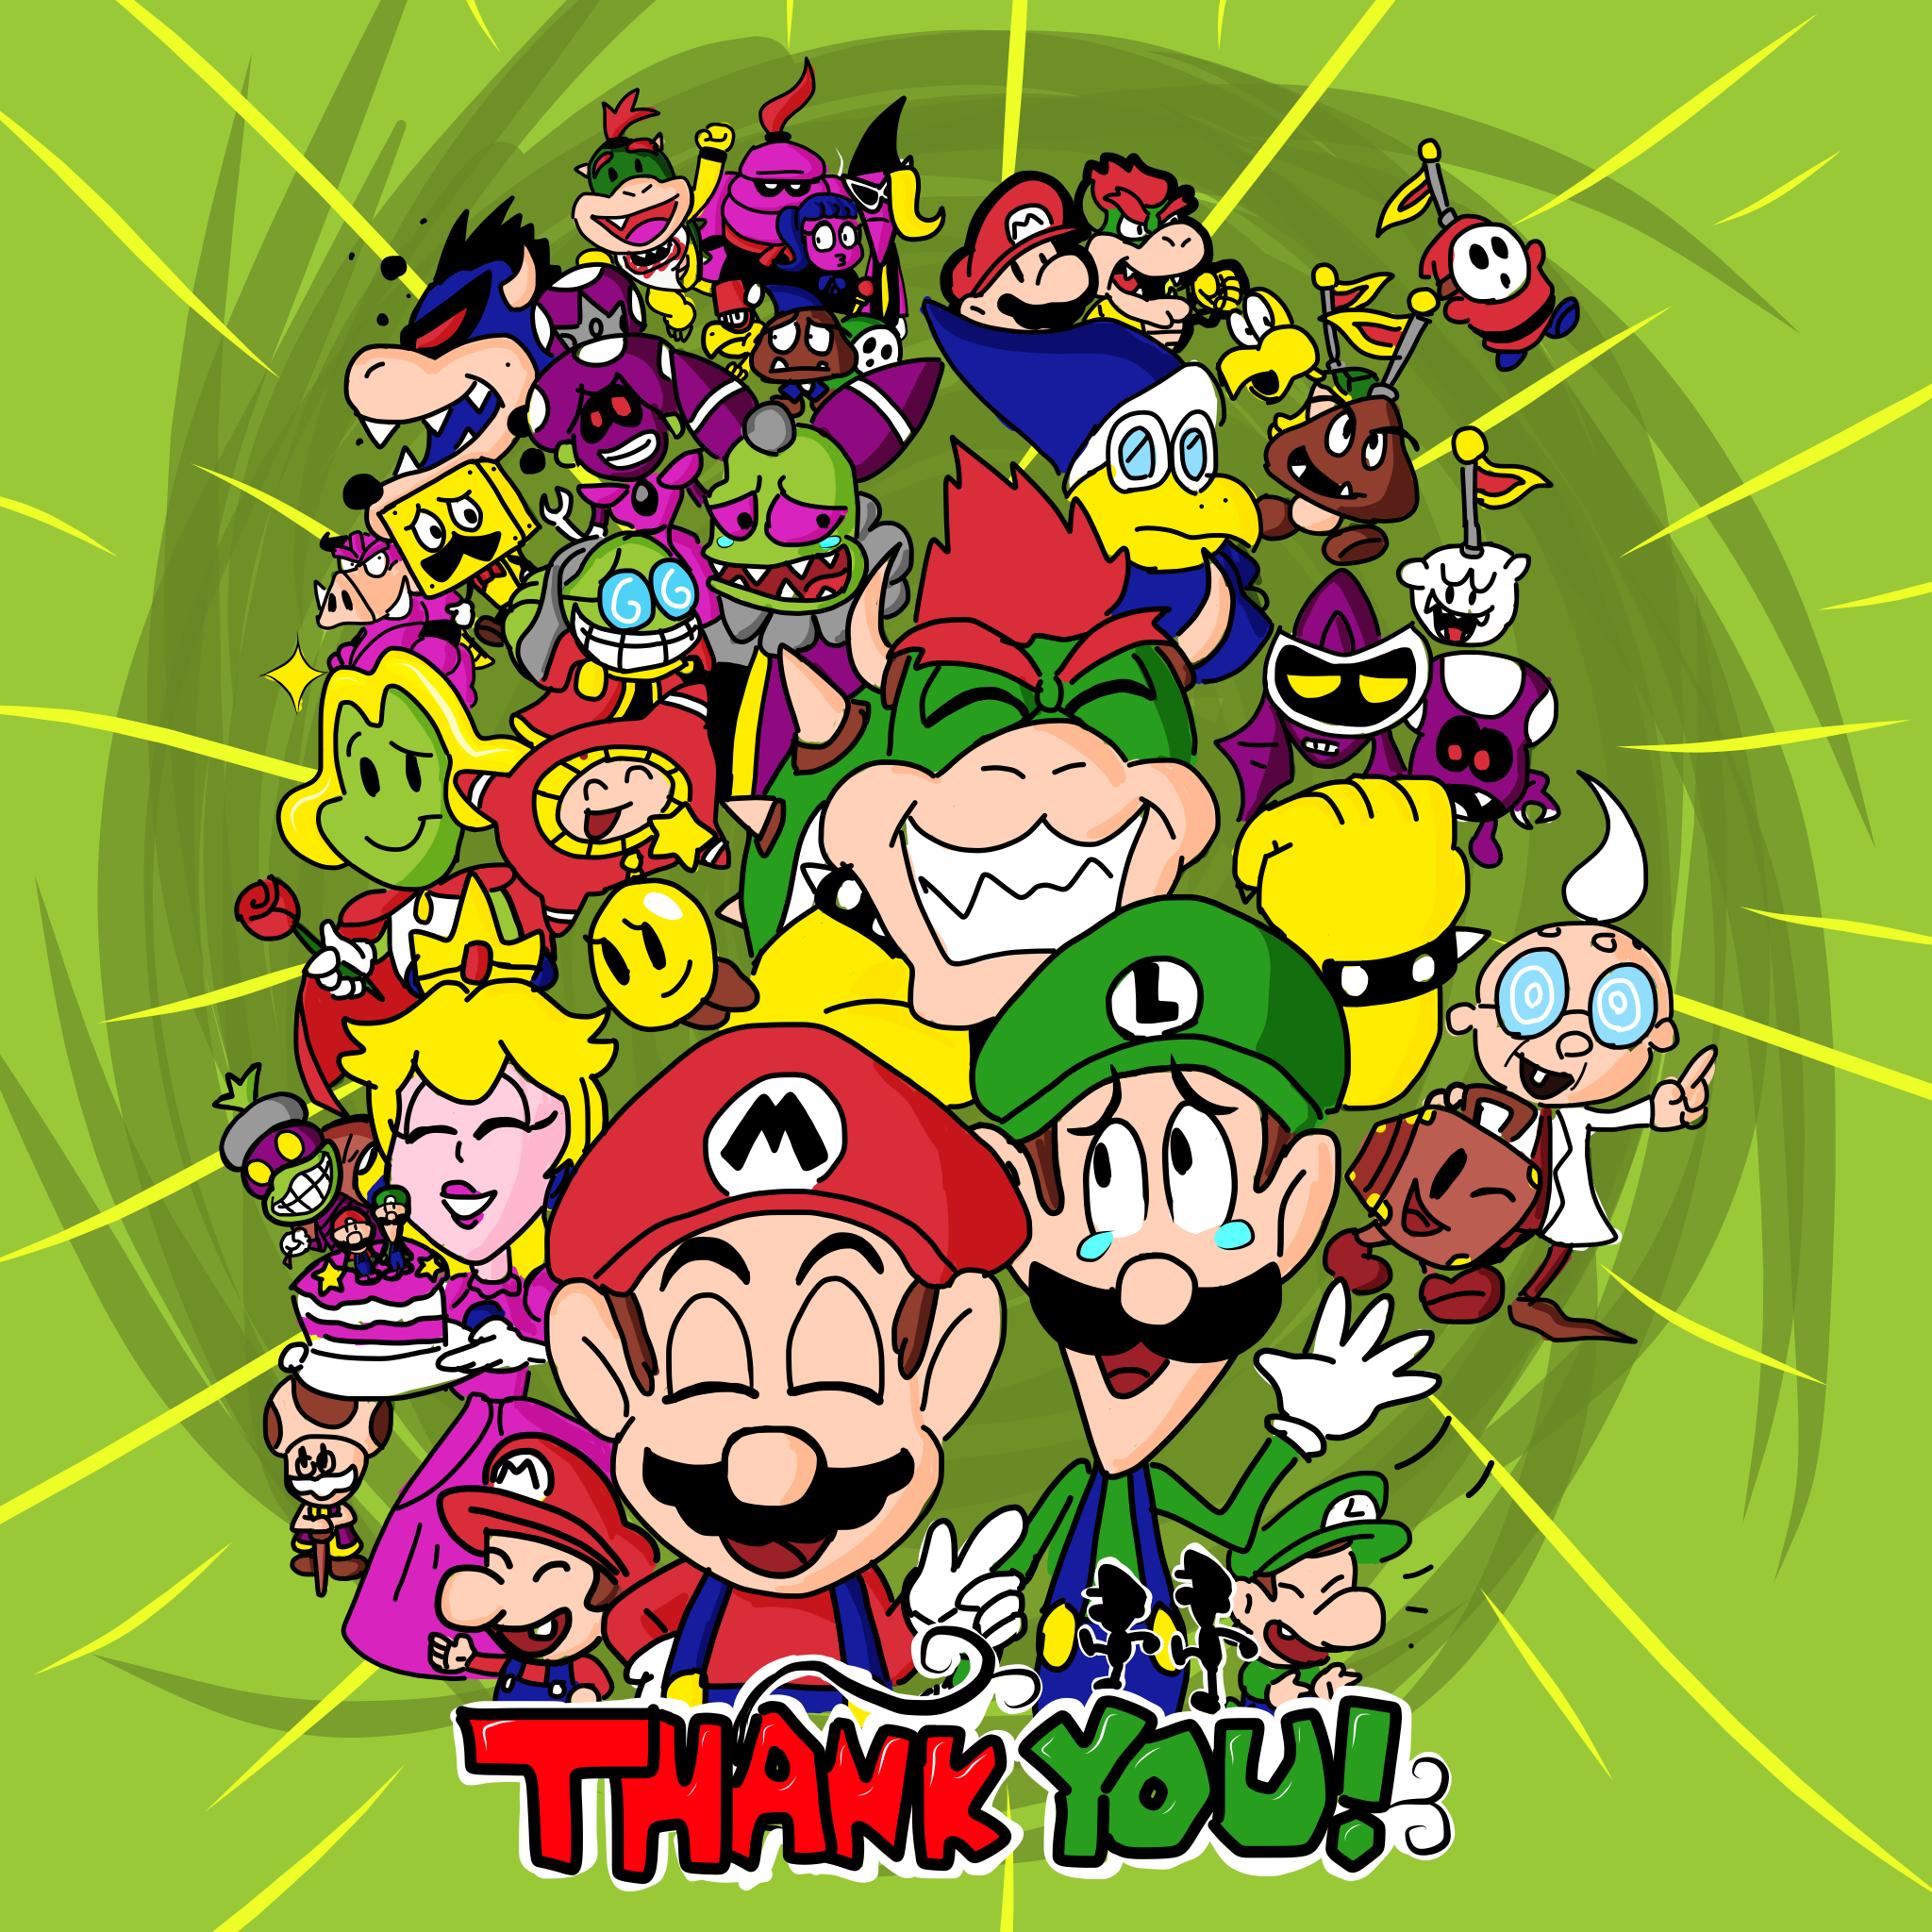 thank_you_alpha_dream_by_fawfulthegreat64_ddhgqyf.png